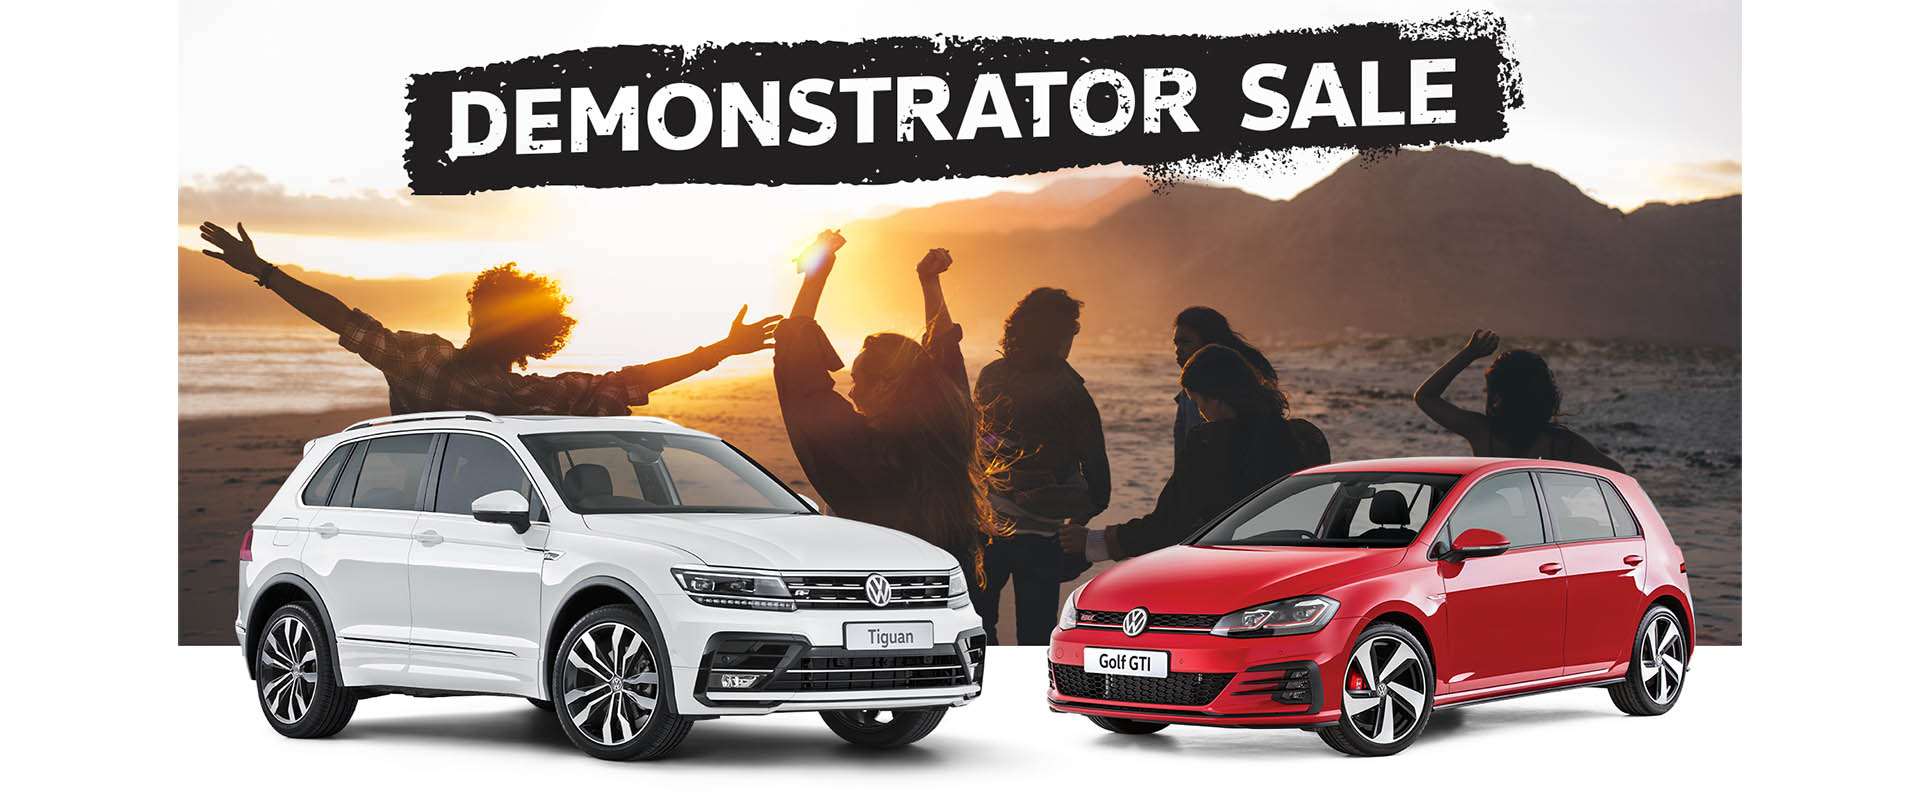 Volkswagen Passenger Demonstrator Sale